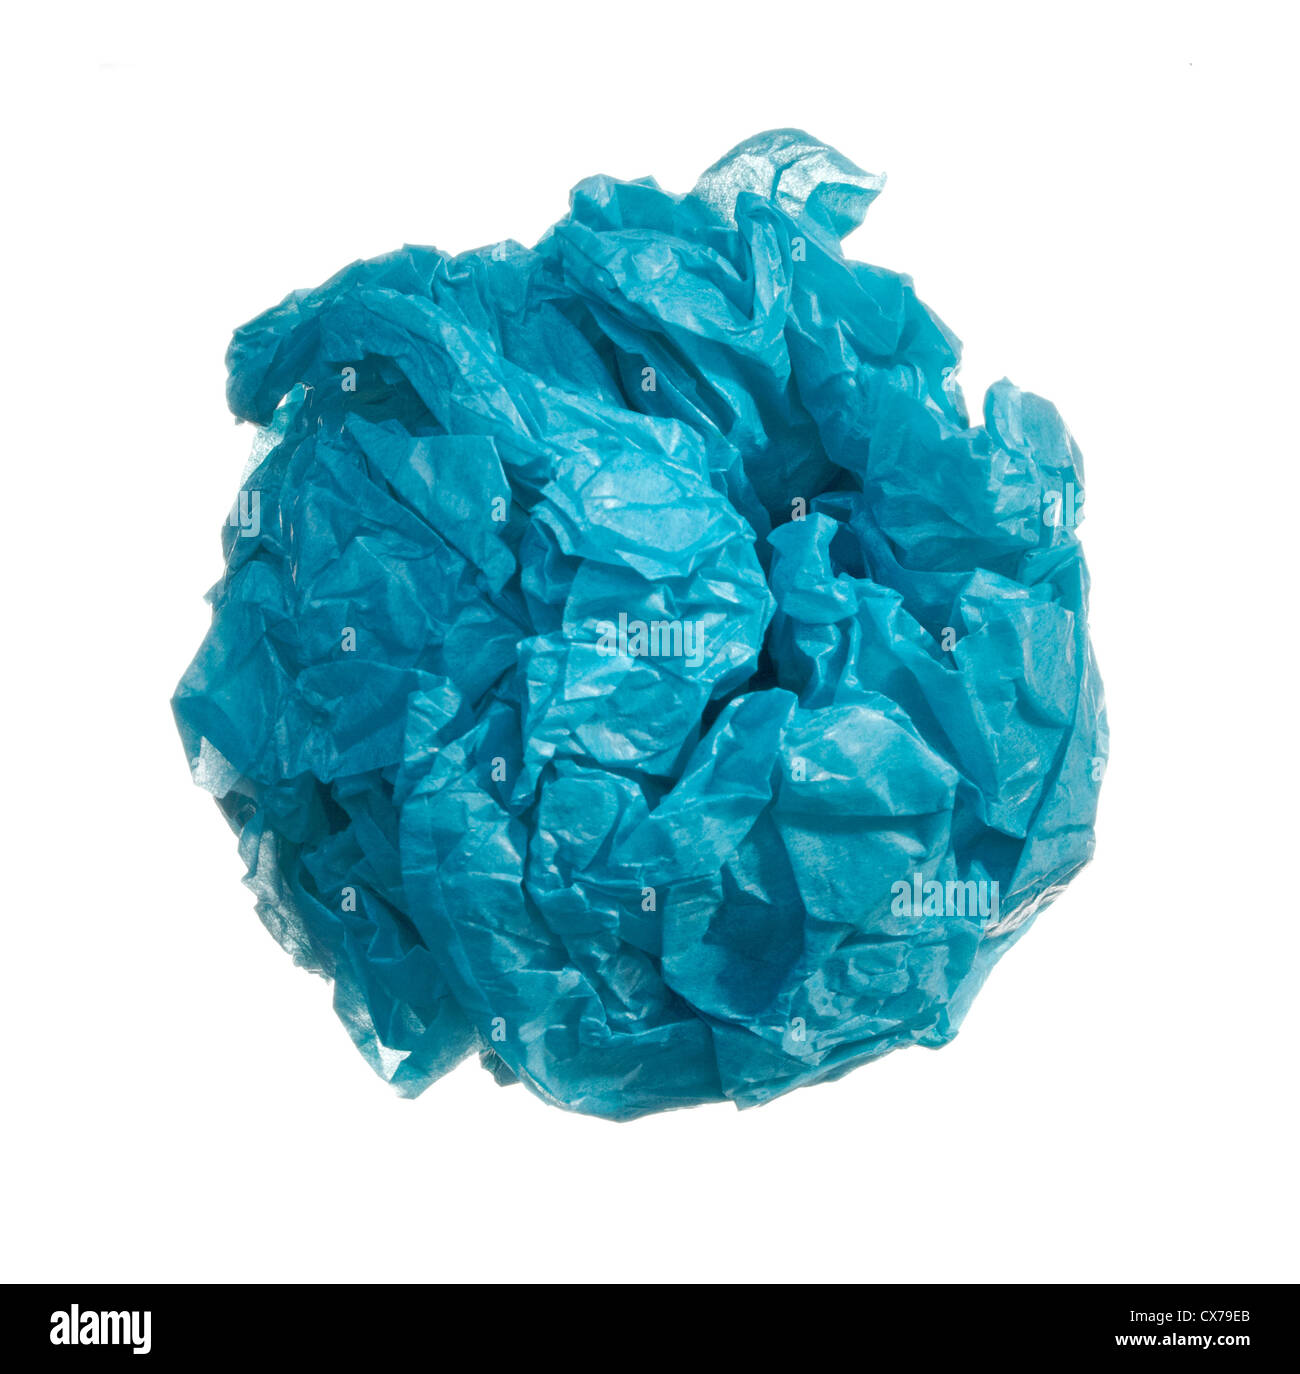 blue wad of paper in a ball shape photographed on a white background - Stock Image